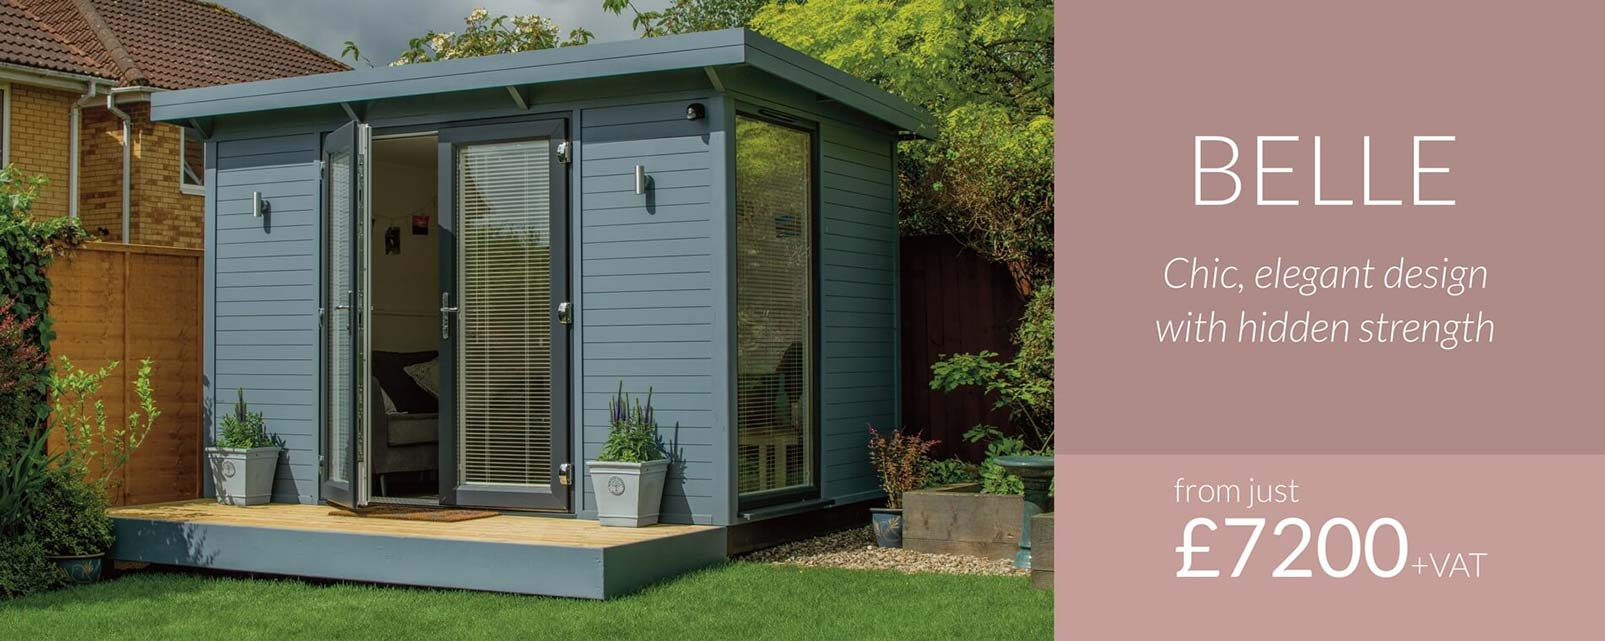 Insulated Garden Rooms Uk She Shed South East Smart